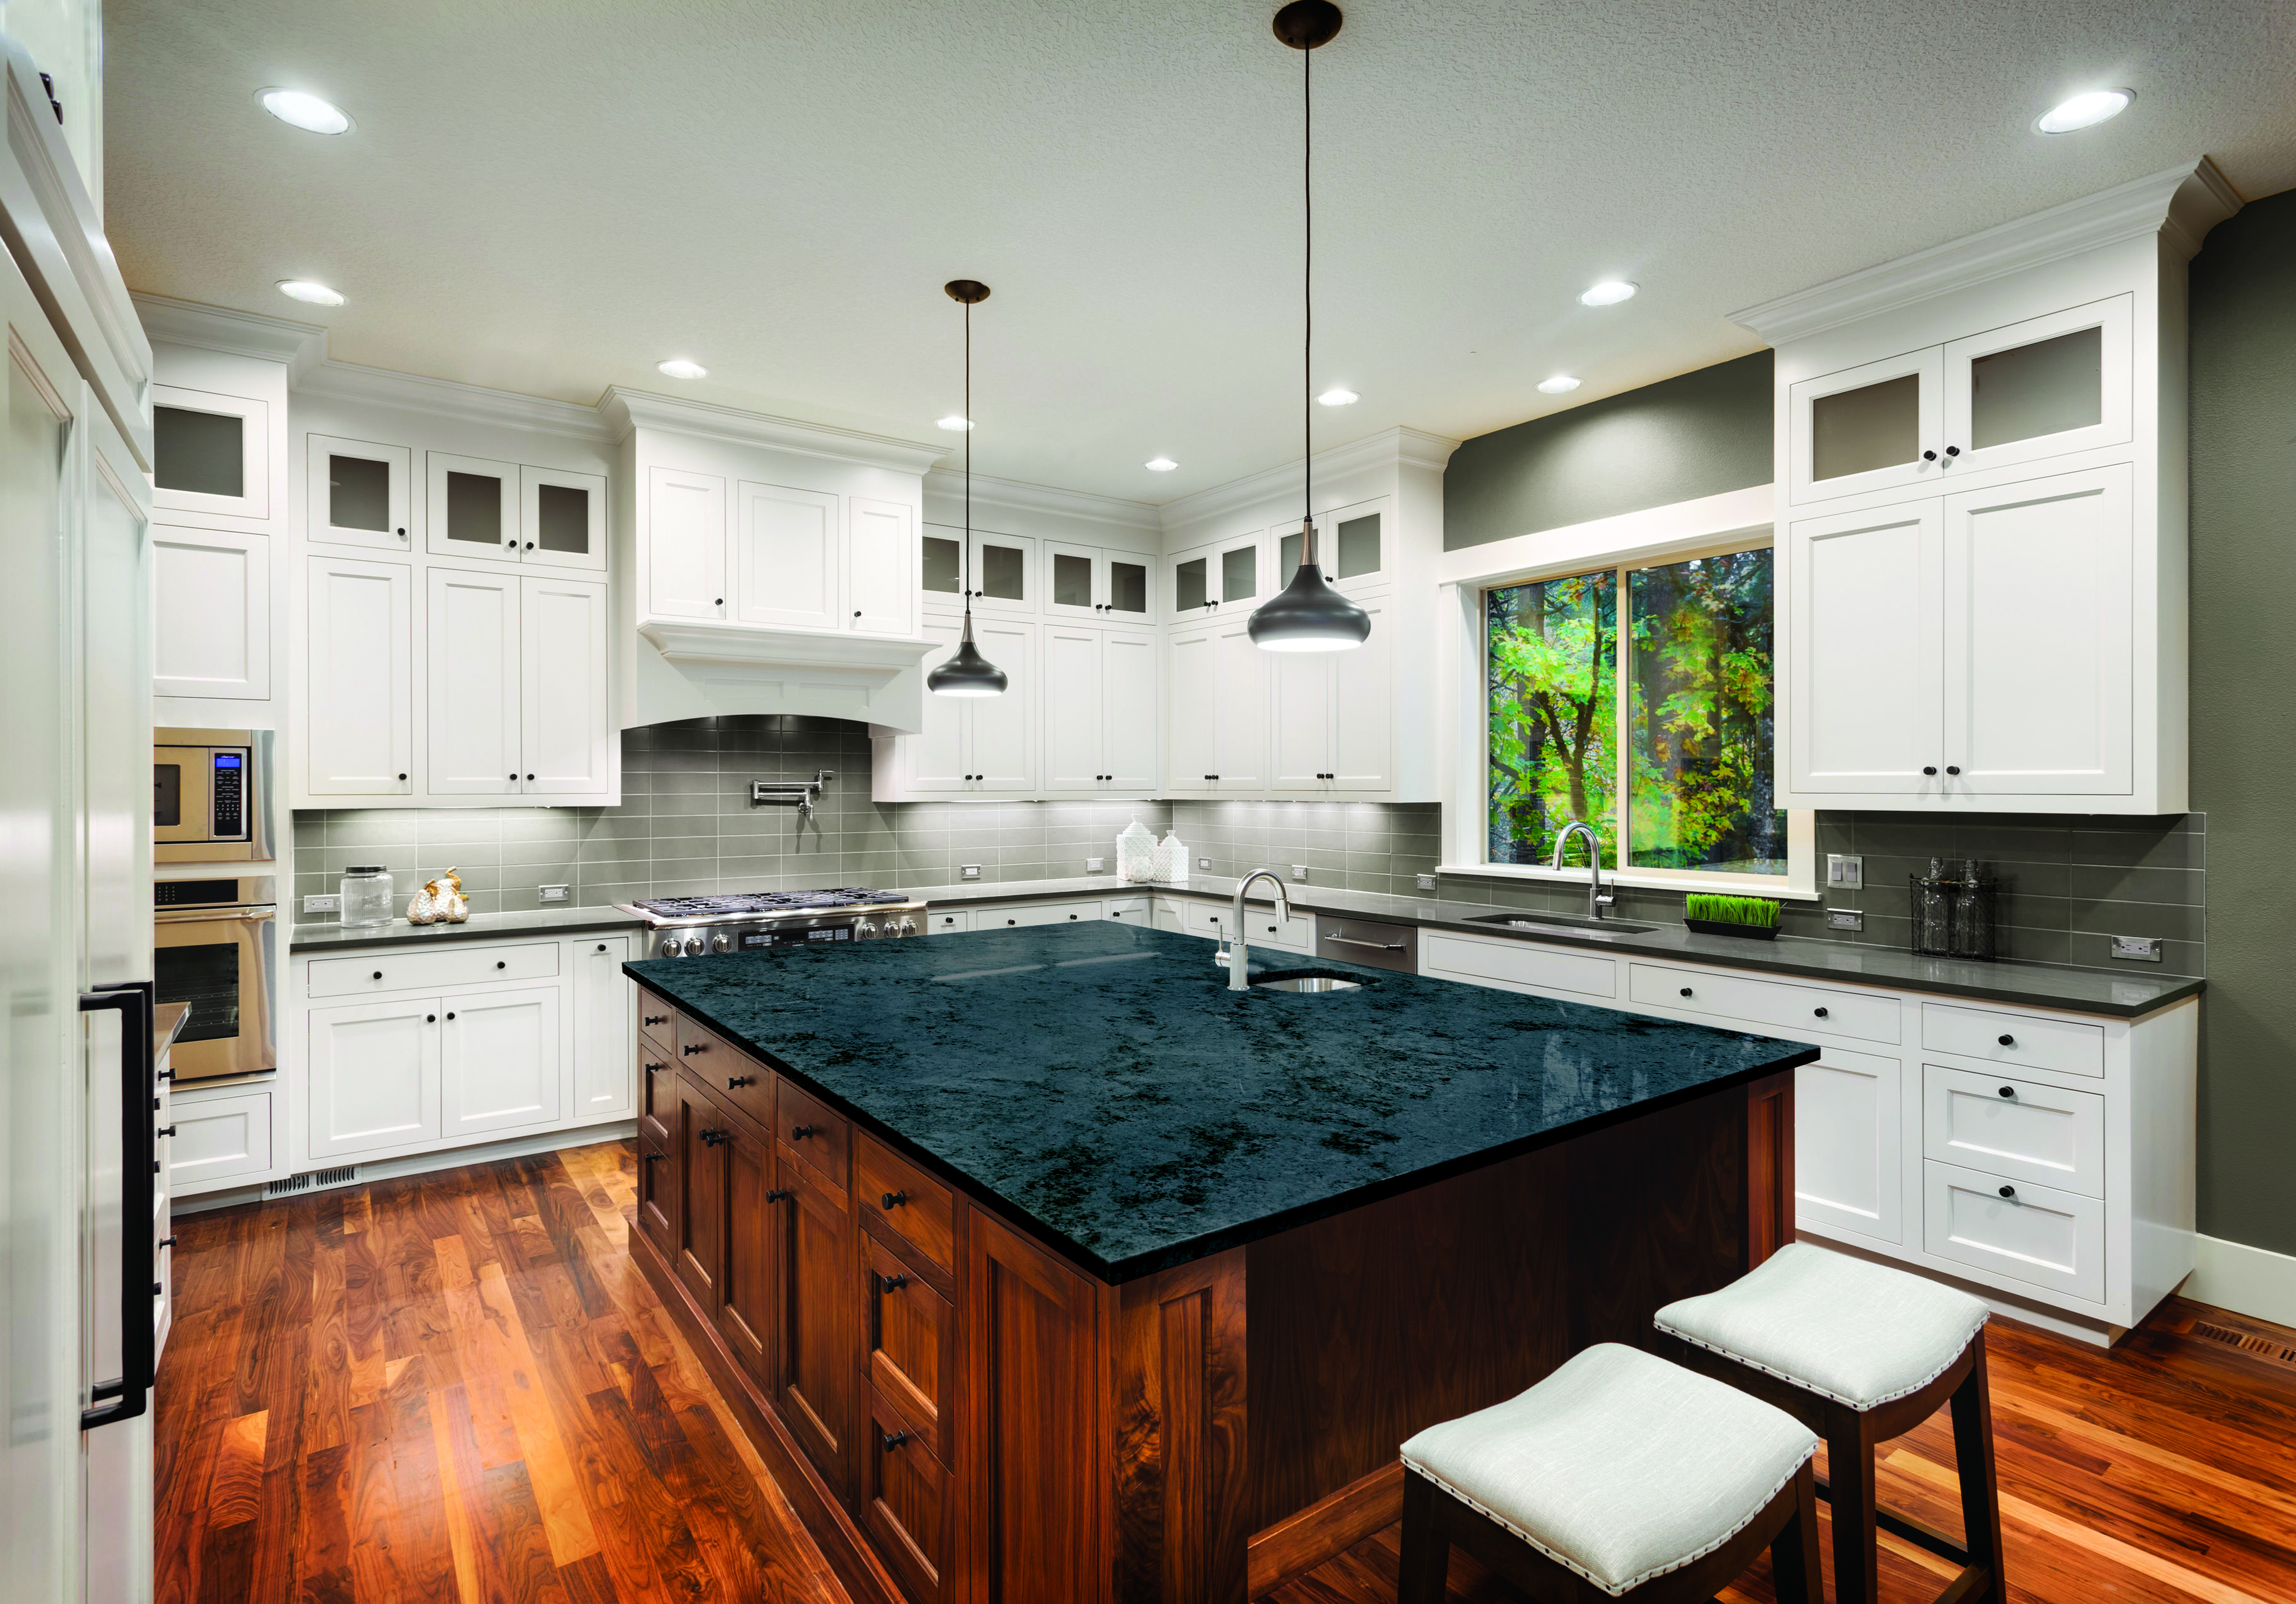 Recessed Lighting Reconsidered In The Kitchen